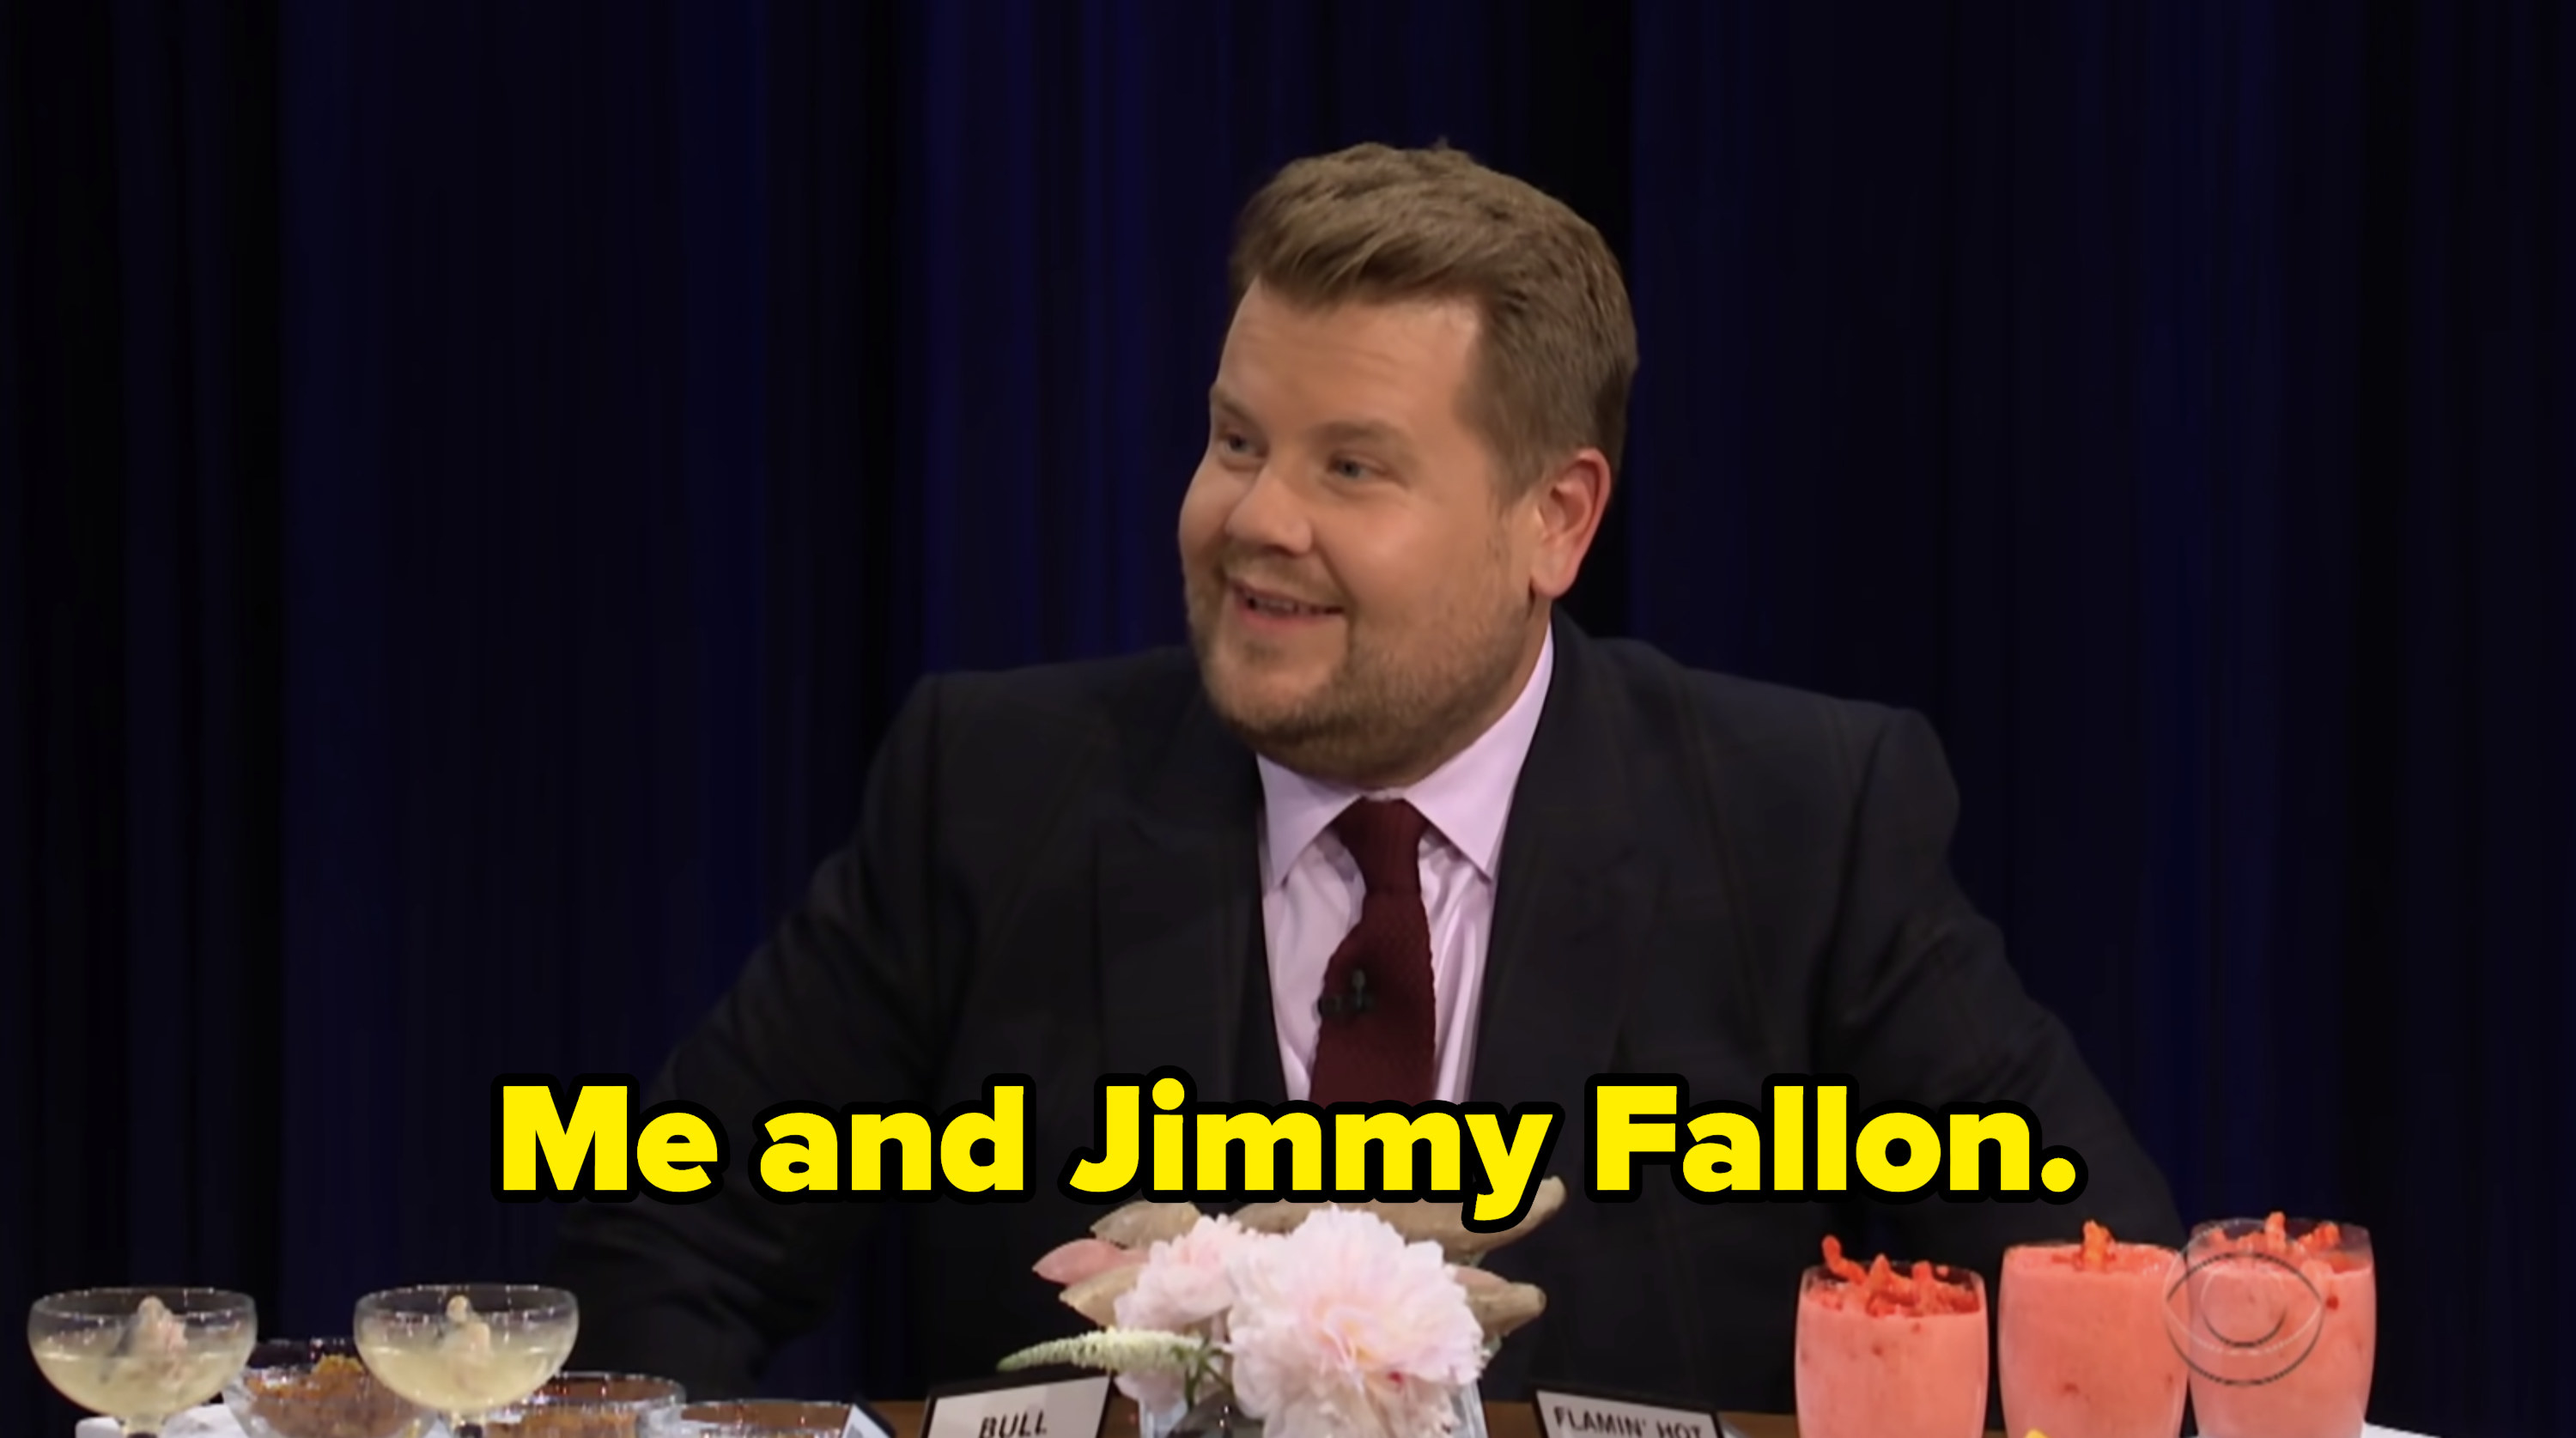 James Cordon revealing Jimmy Fallon and he were the drunkest at the Met Gala